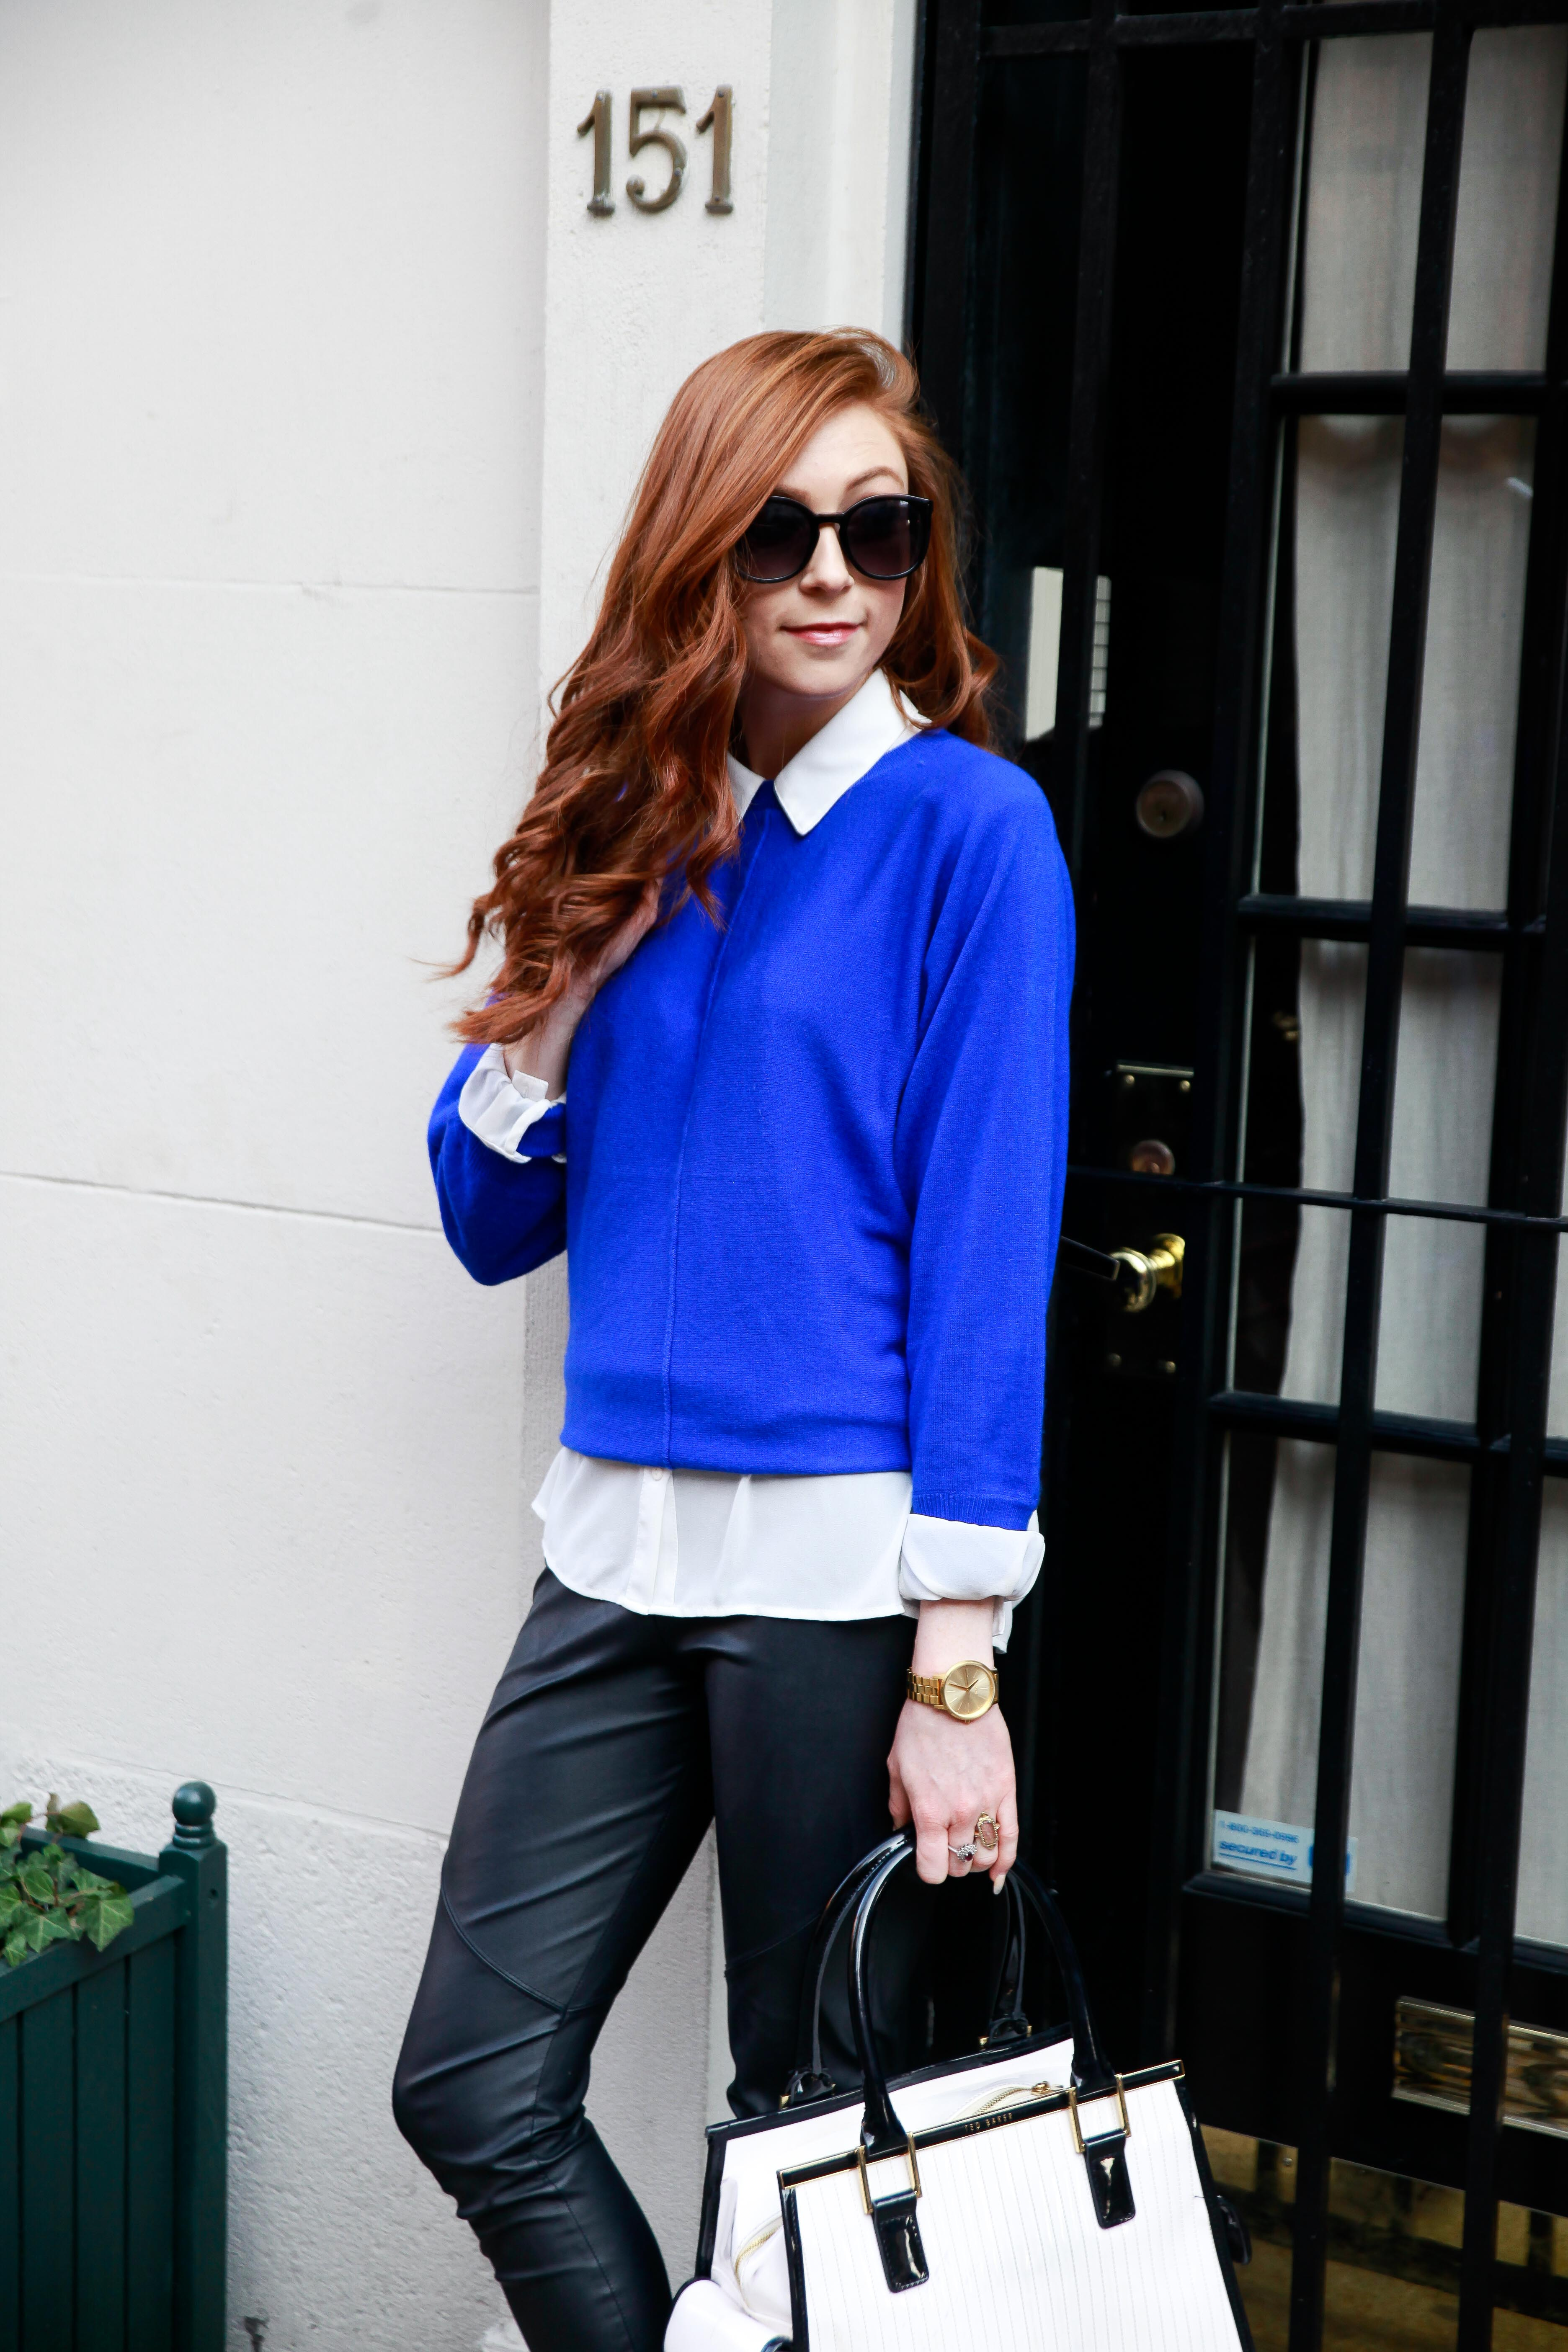 Electric Blue - Park Ave - NYC Style